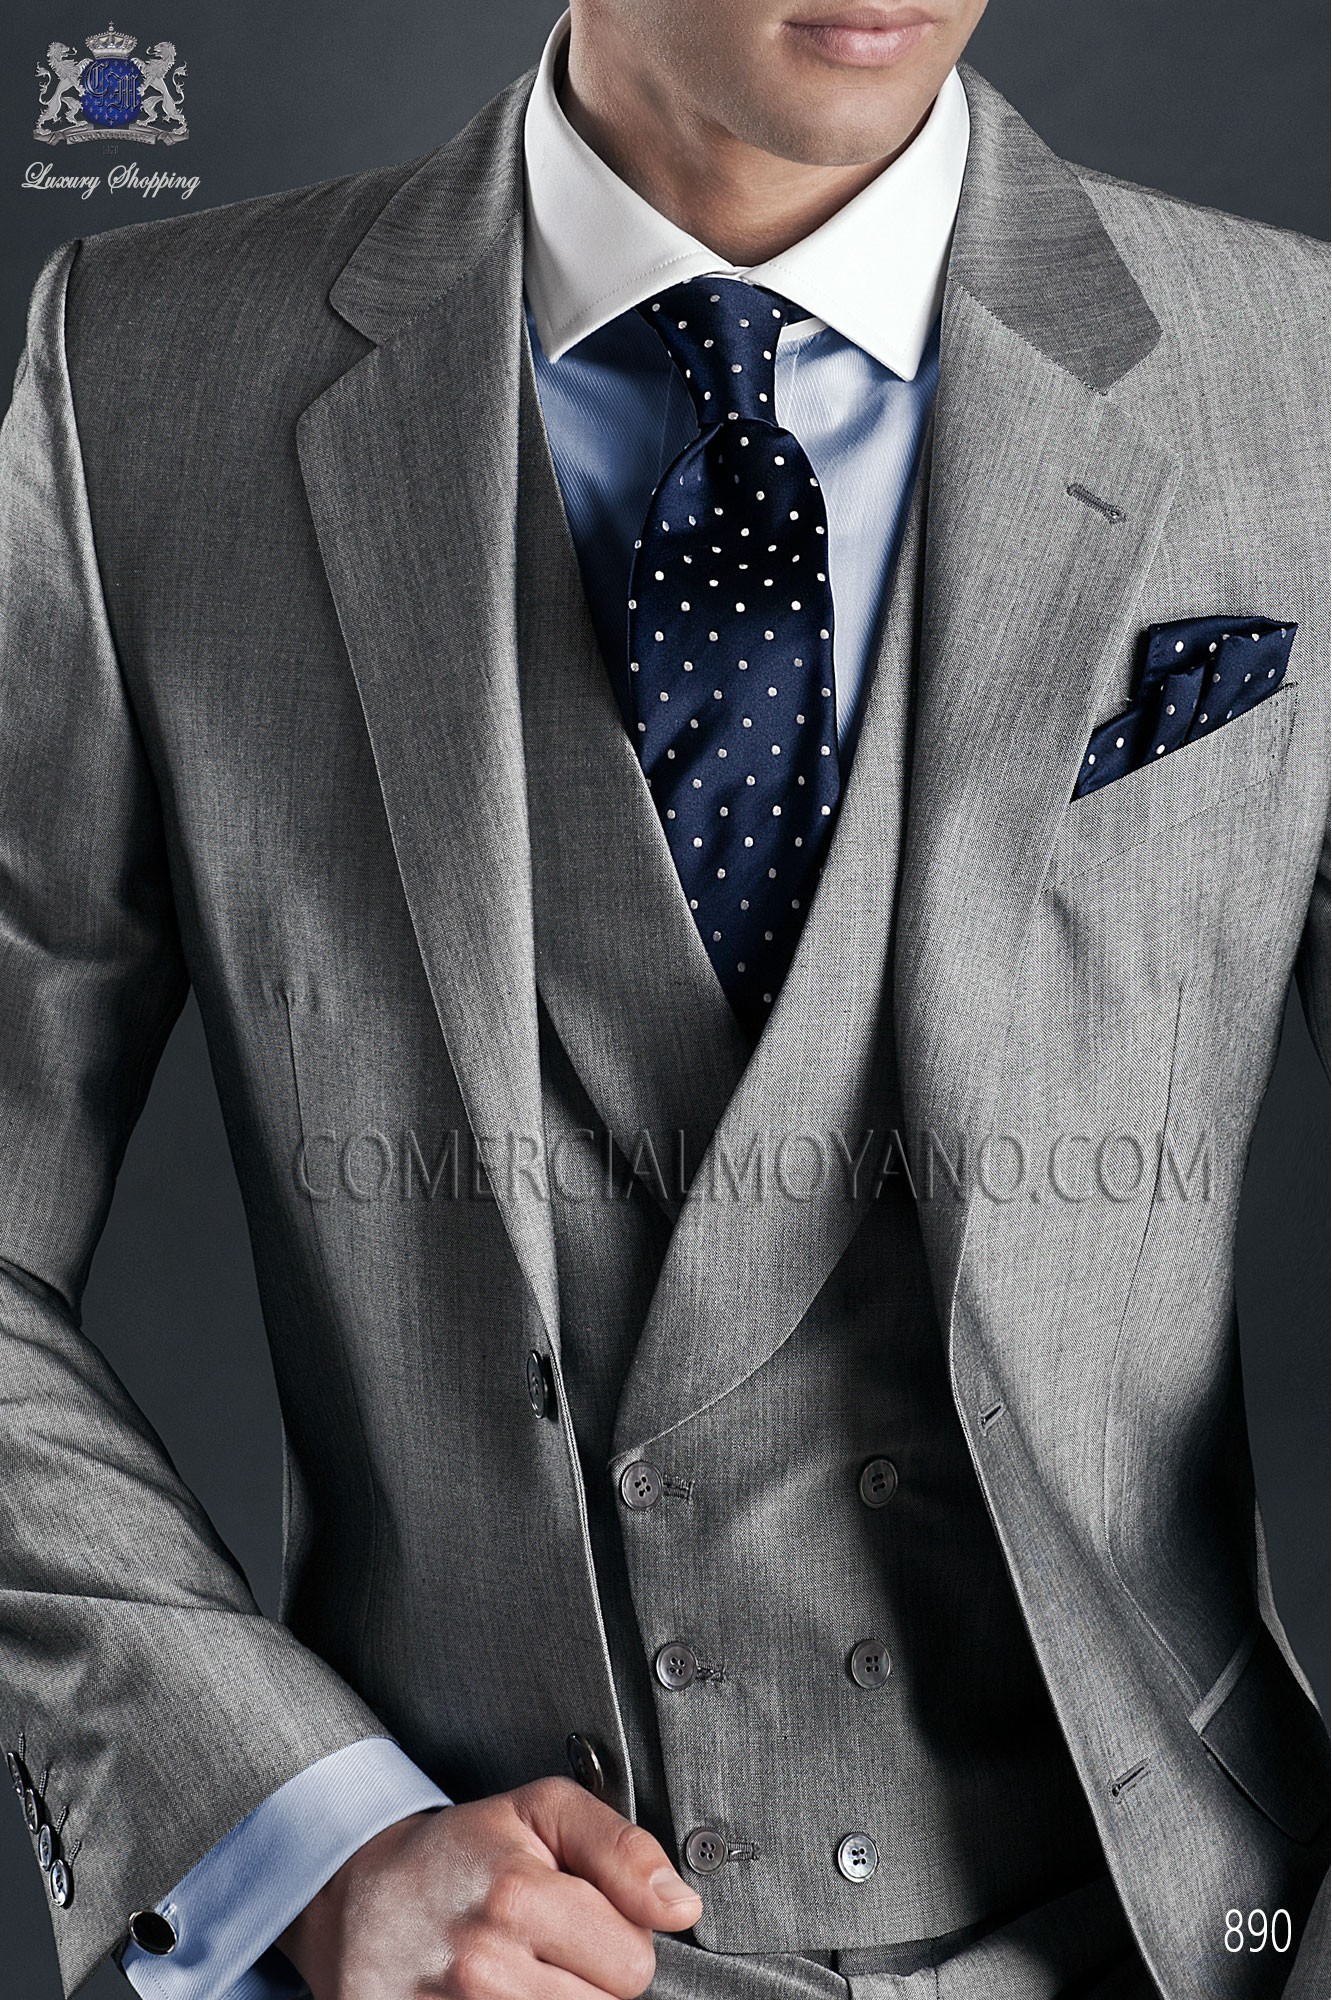 Italian gentleman grey men wedding suit, model: 890 Ottavio Nuccio Gala Gentleman Collection